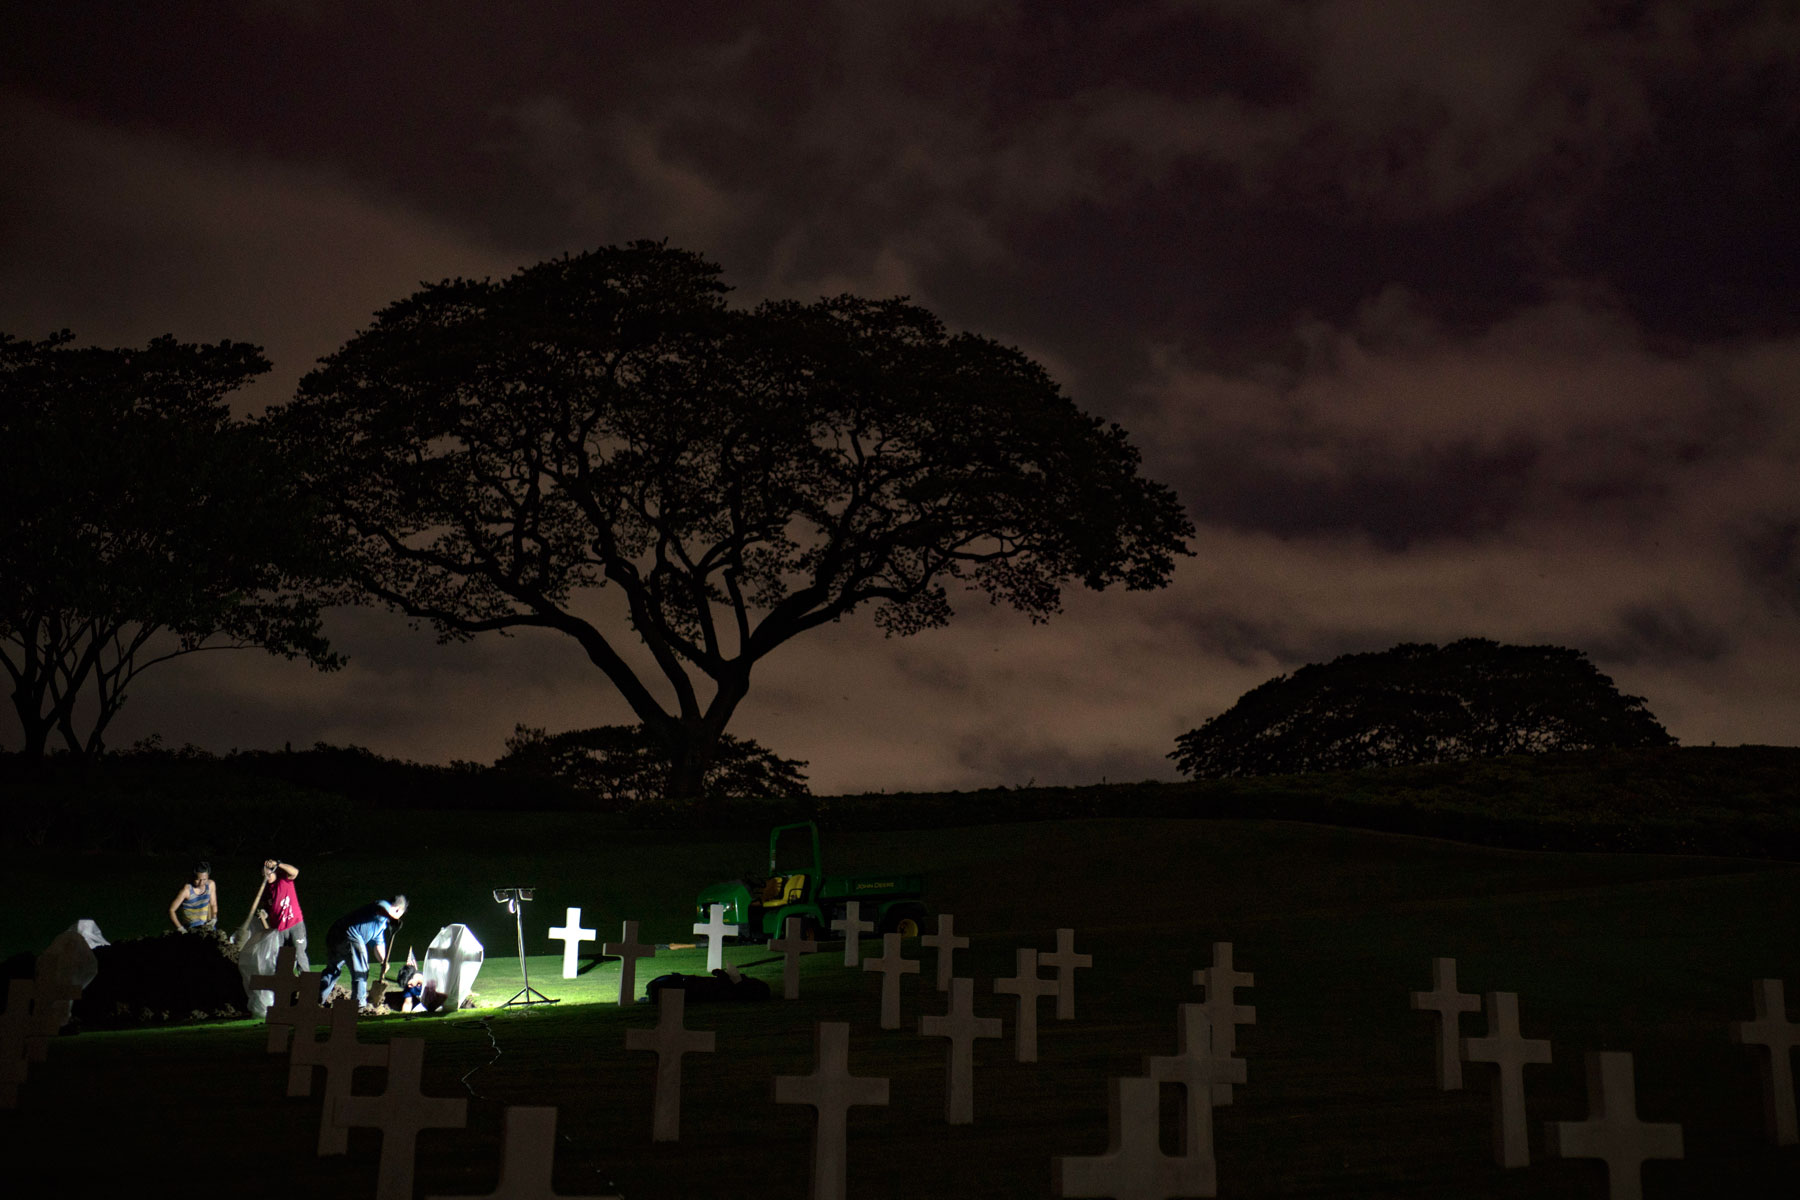 Local workers with the American Battle Monuments Commission (ABMC) uncover a casket at the Manila American Cemetery and Memorial in Manila, Philippines, June 6, 2018. ABMC worked with the Defense POW/MIA Accounting Agency (DPAA) to exhume the remains from 23 graves as part of DPAA's effort to identify personnel that died in the Cabanatuan POW camp during WWII. (U.S. Air Force photo by Tech. Sgt. Kathrine Dodd)